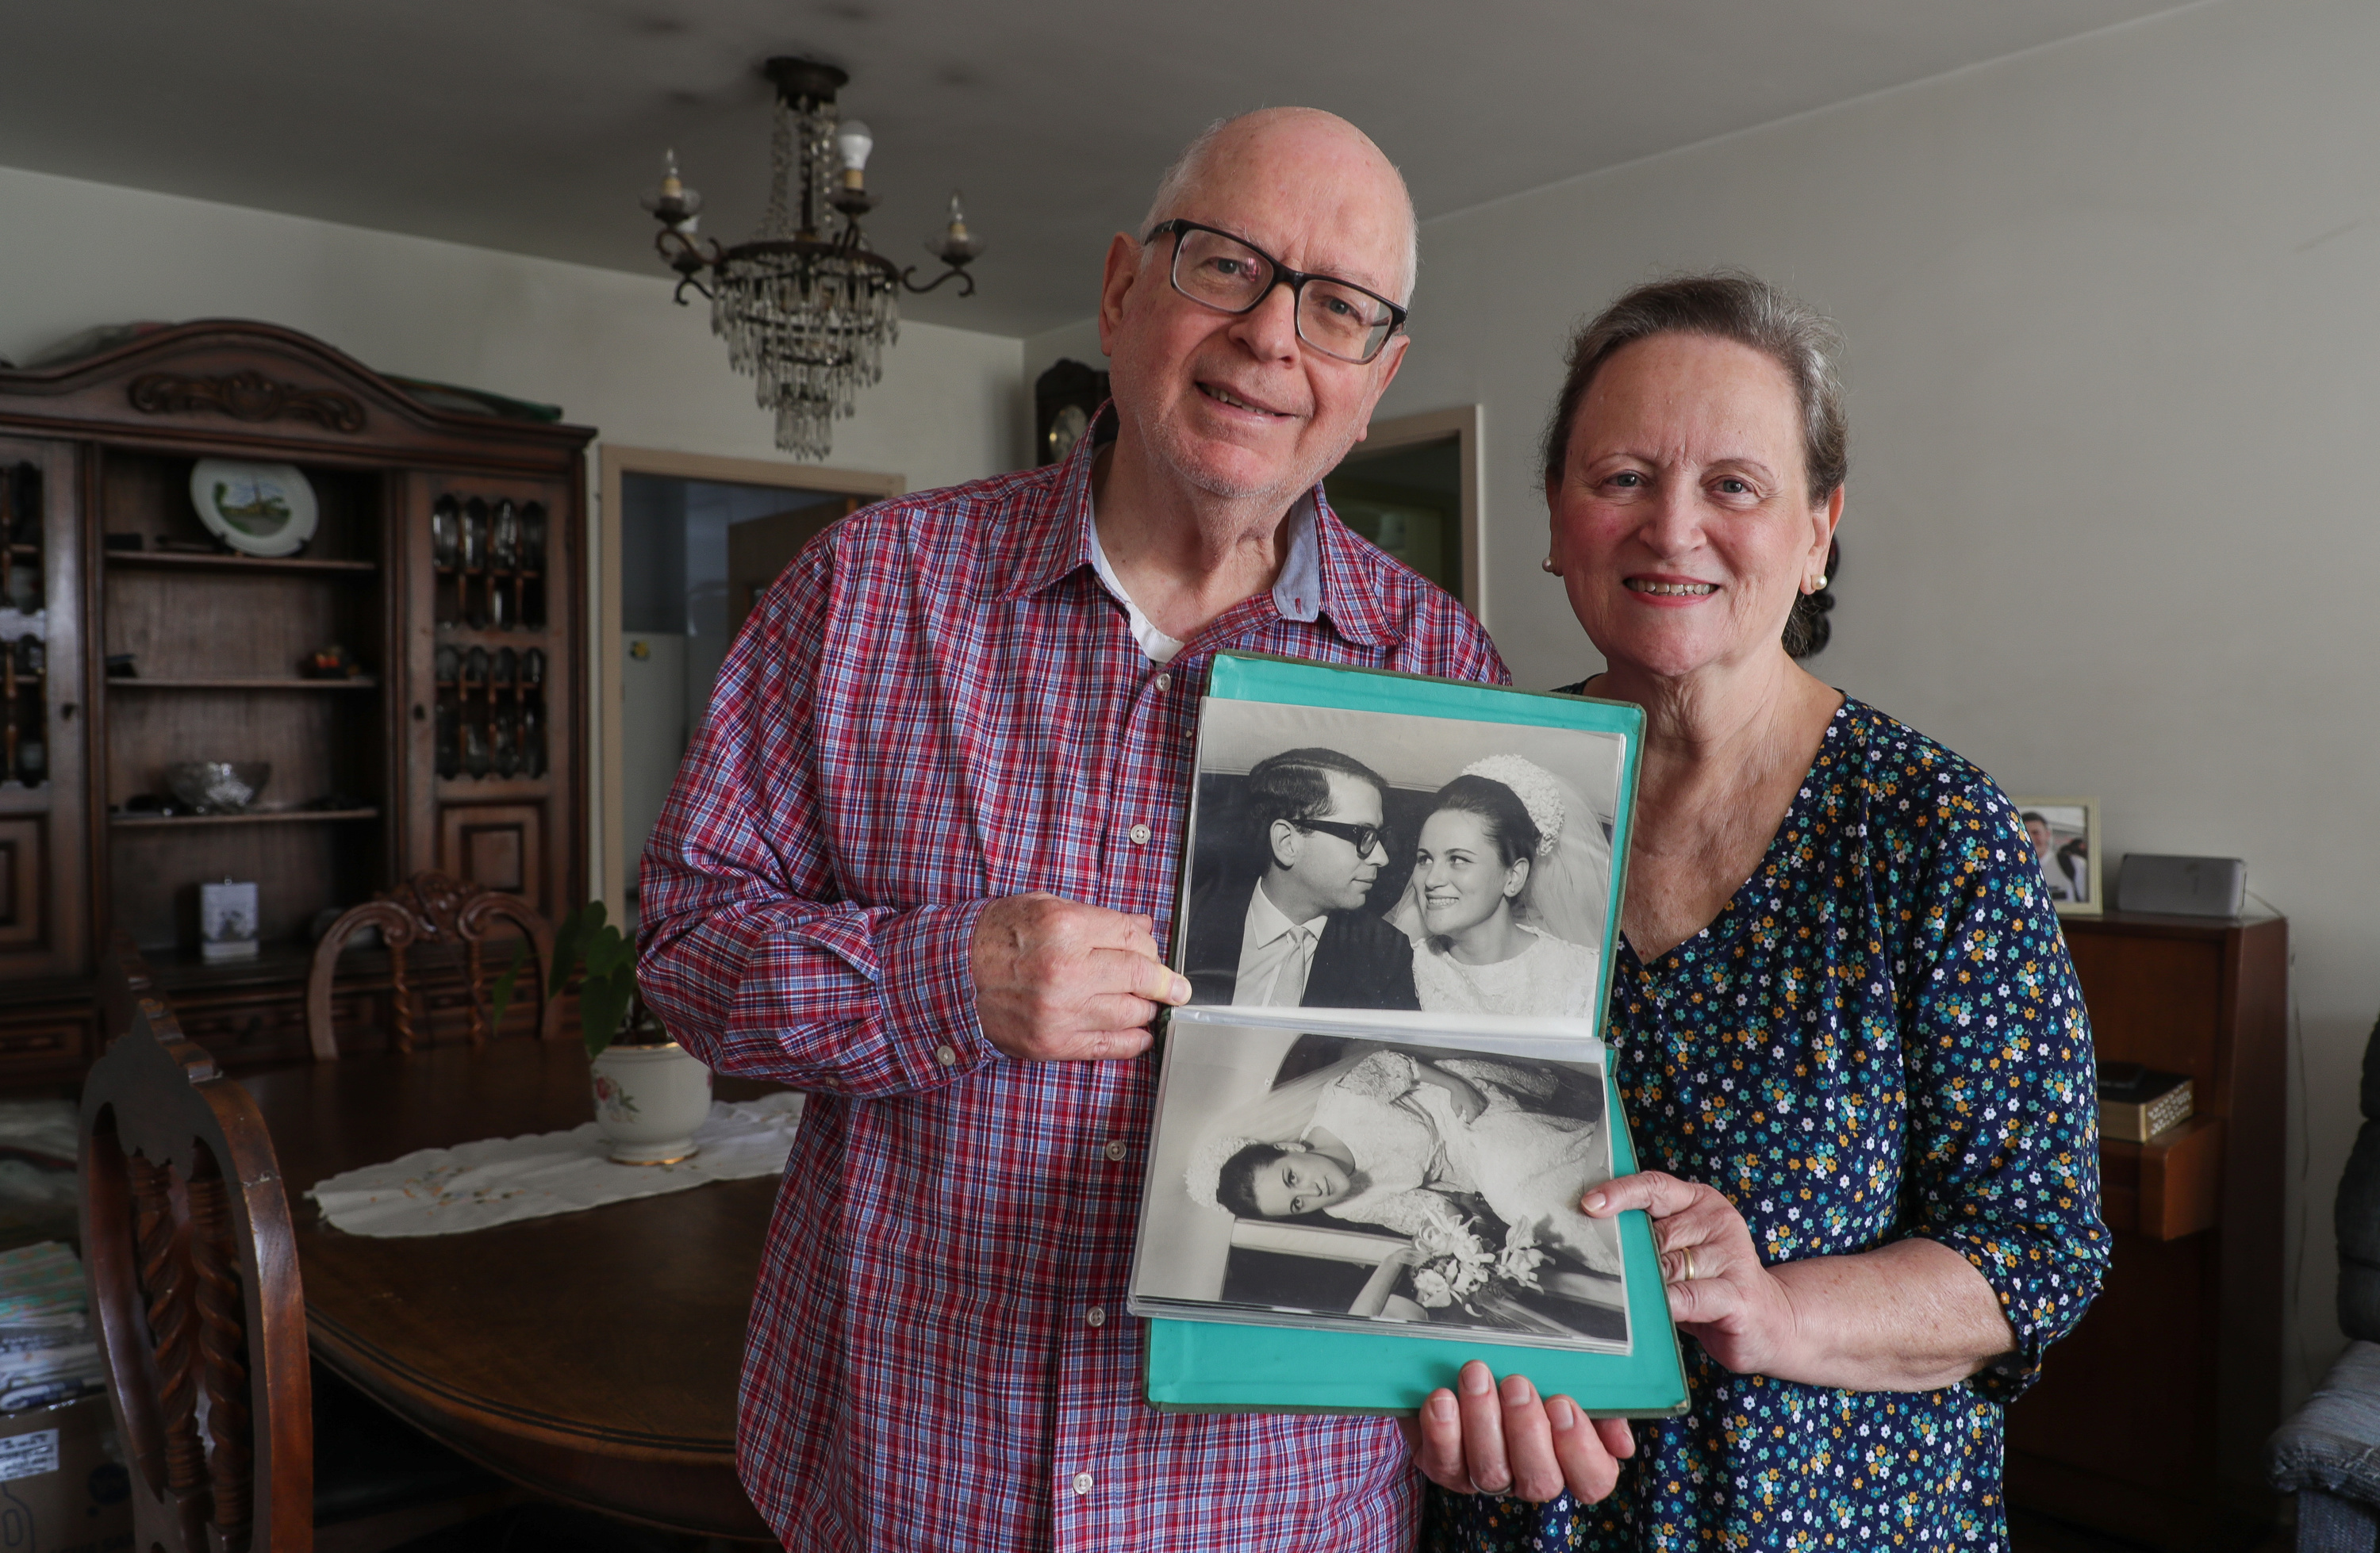 Demar and Sandra Staniscia pose for a photo with photos from their wedding night at their apartment in São Paulo, Brazil on Wednesday, May 23, 2018.